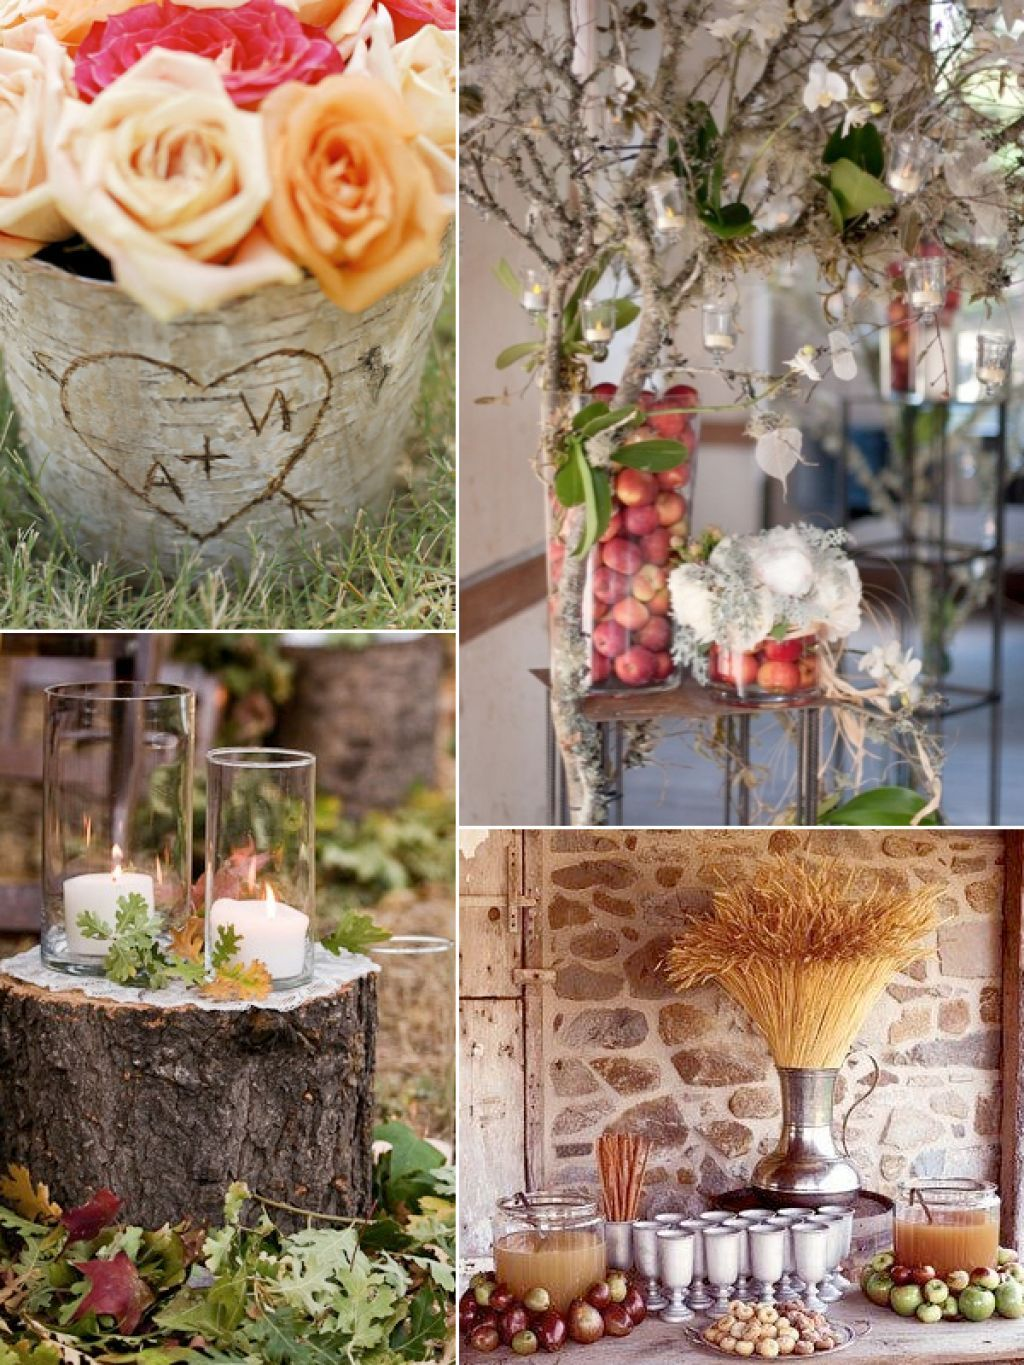 Wedding decoration ideas at home  Simple Rustic Wedding Decorating Ideas  More info could be found